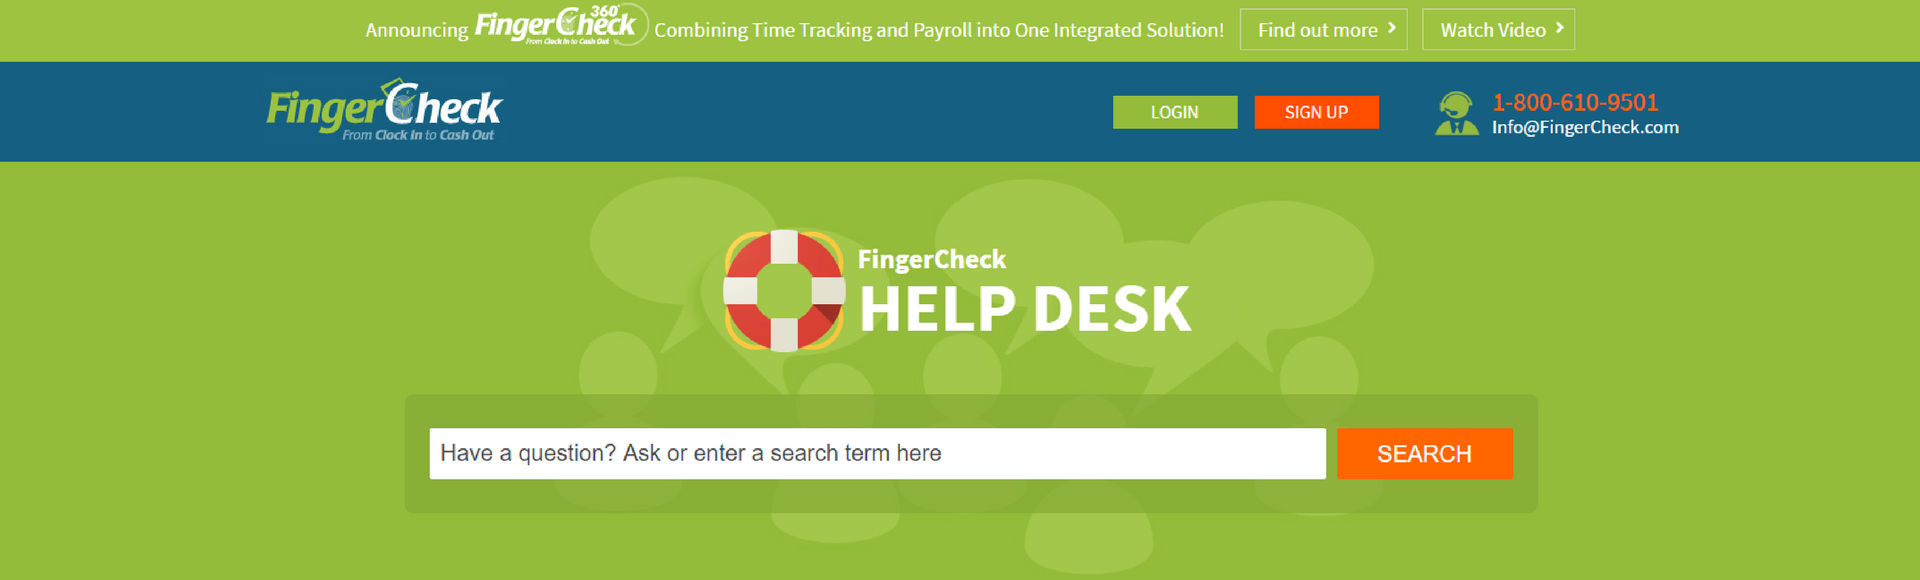 Fingercheck help desk portal homepage.